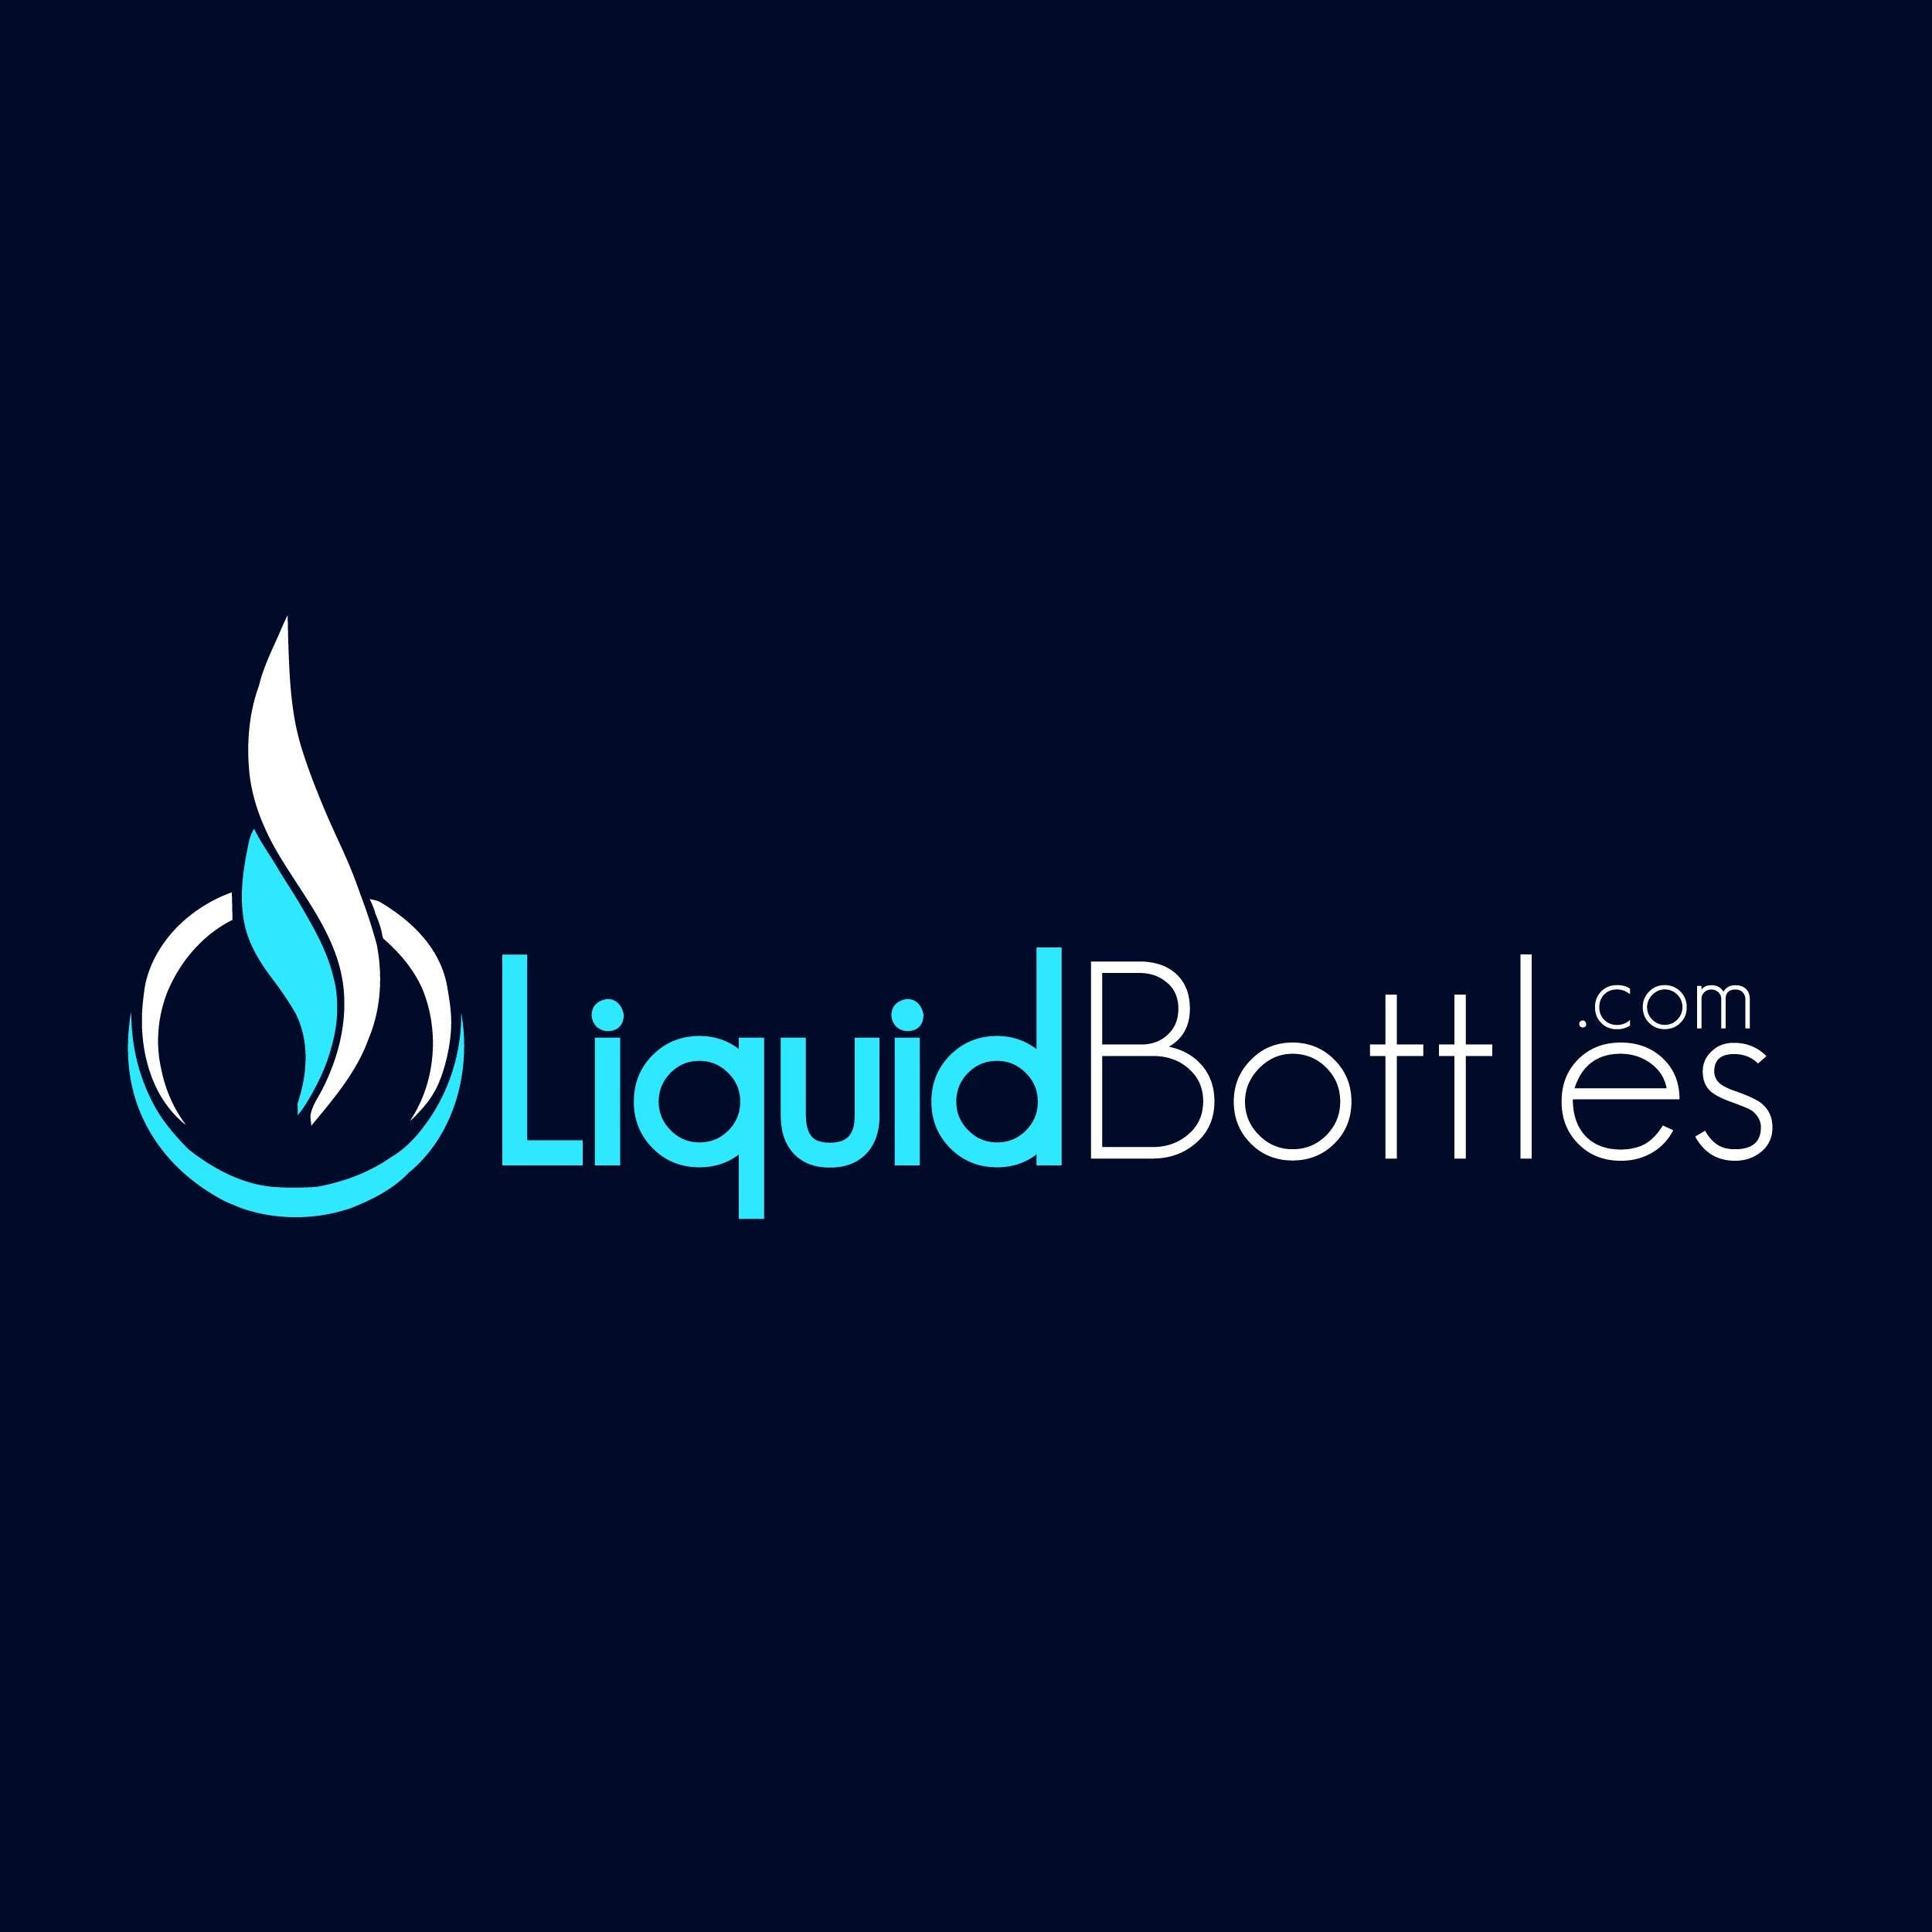 Liquid Bottles LLC logo